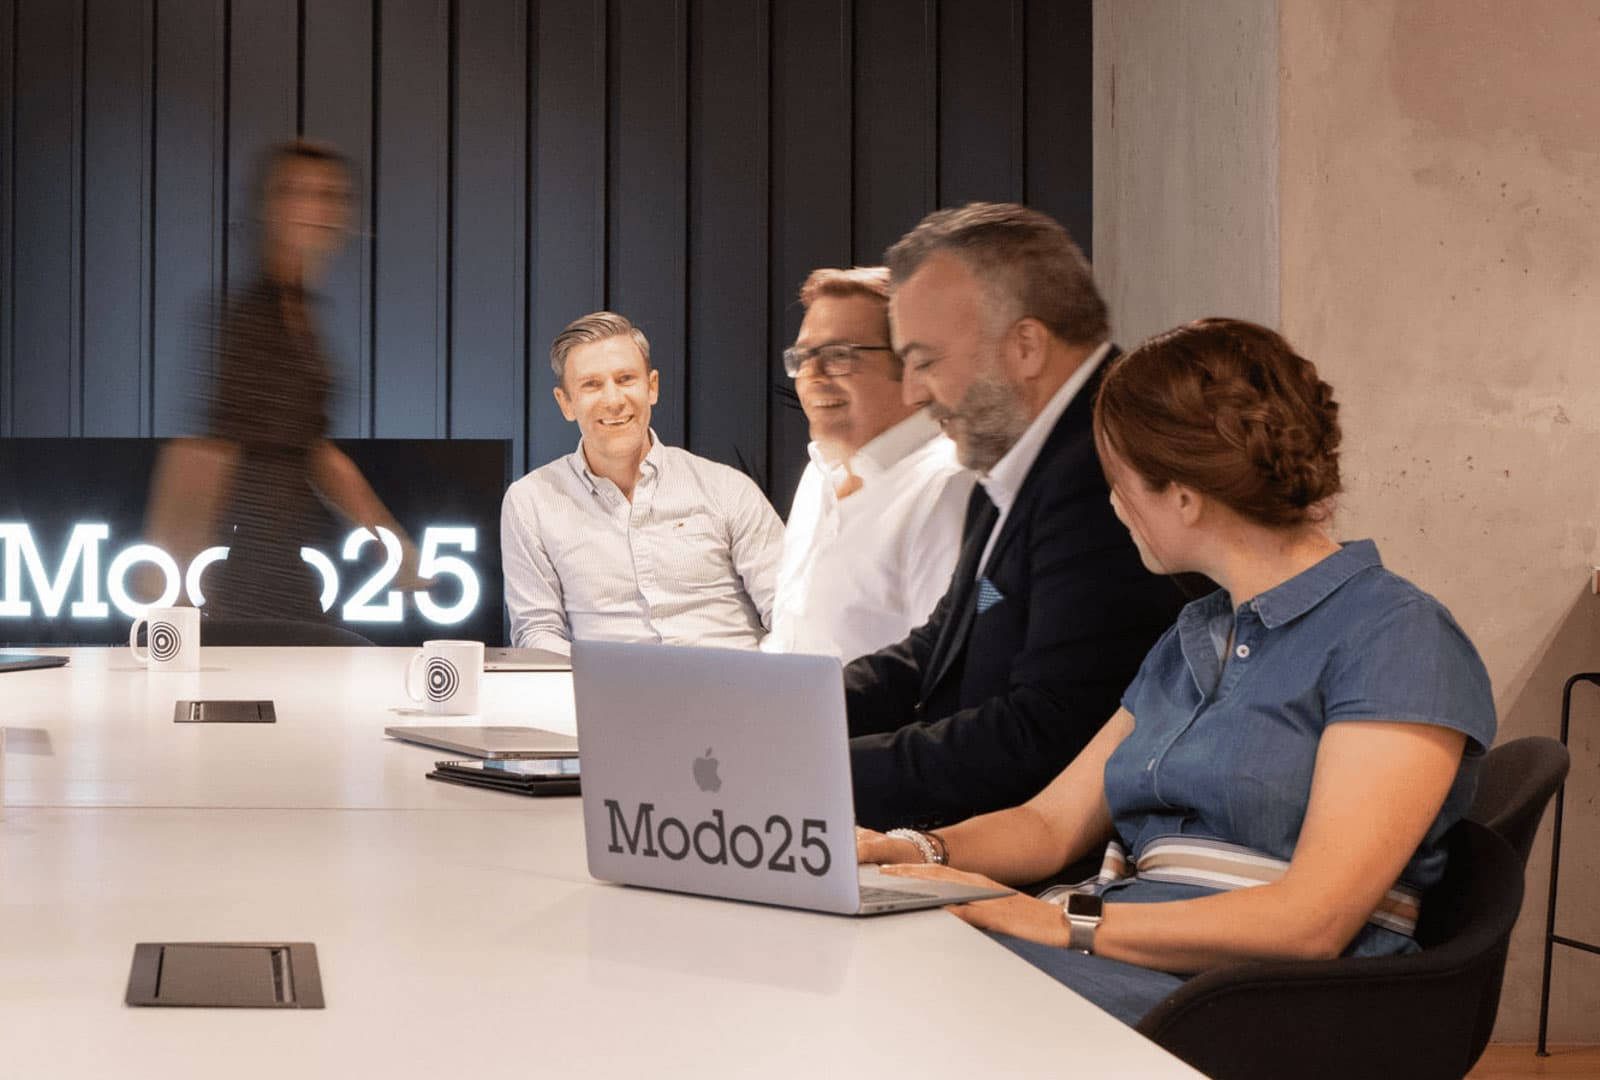 Inhousing, Digital Strategy & Training - Modo25